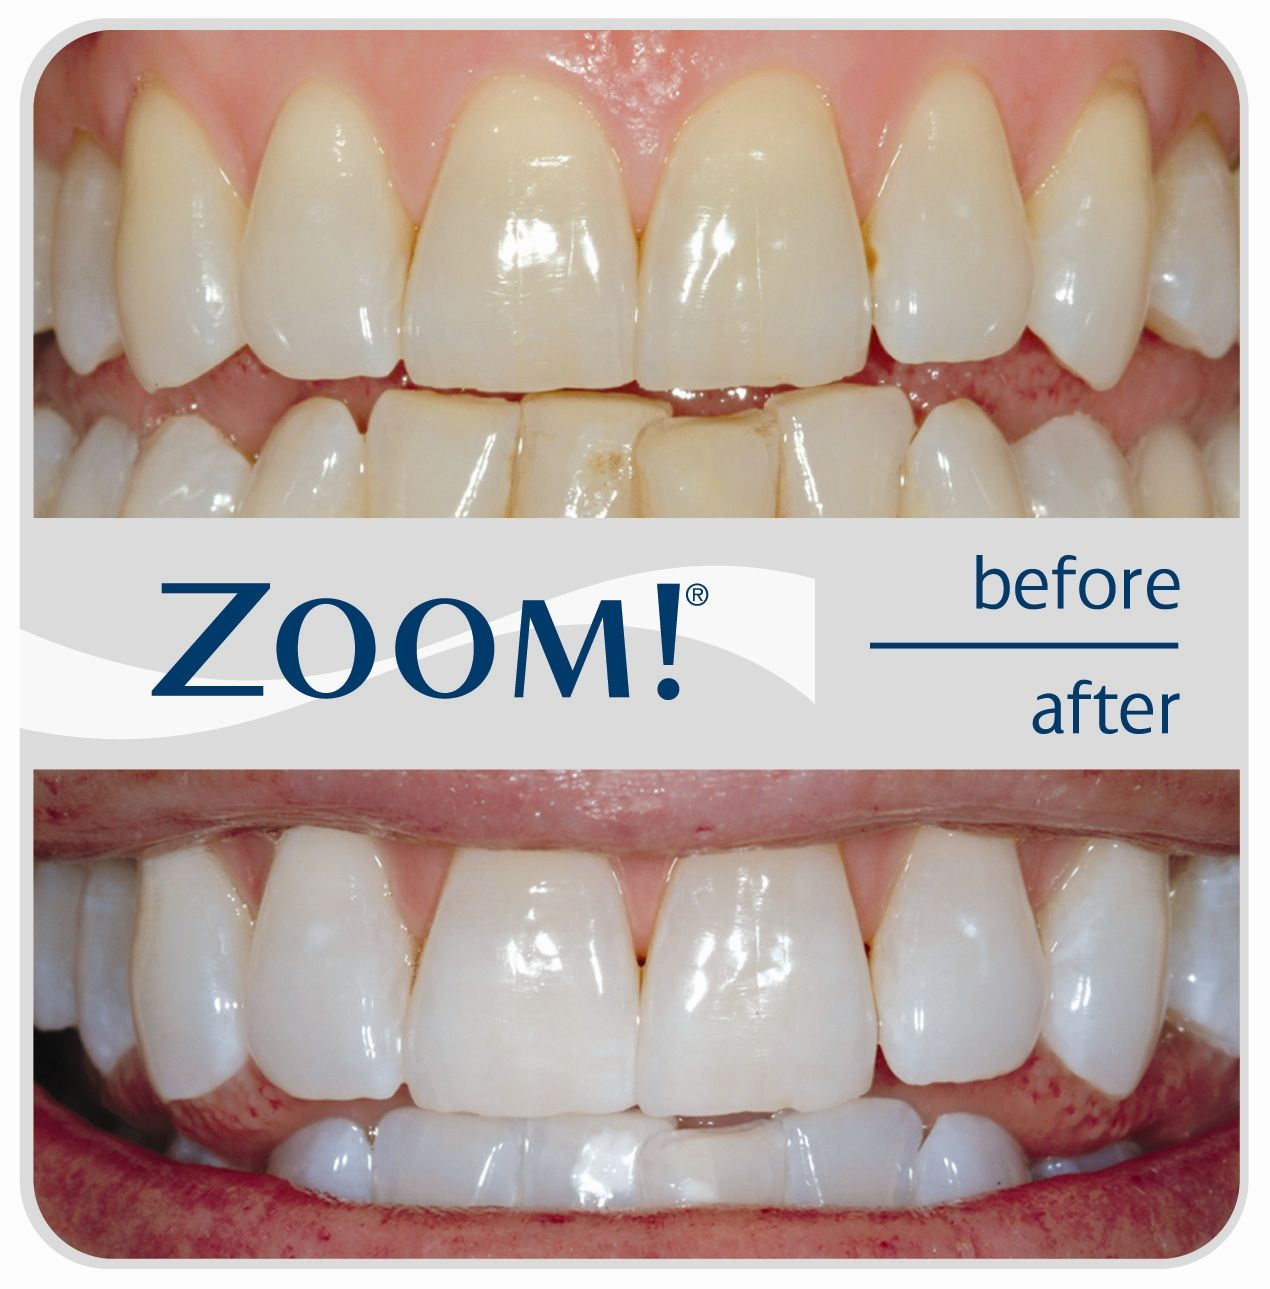 Colgate teeth whitening teeth whitening products pinterest teeth - Whiten Your Teeth By Zoom Teeth Whitening Smile Happily